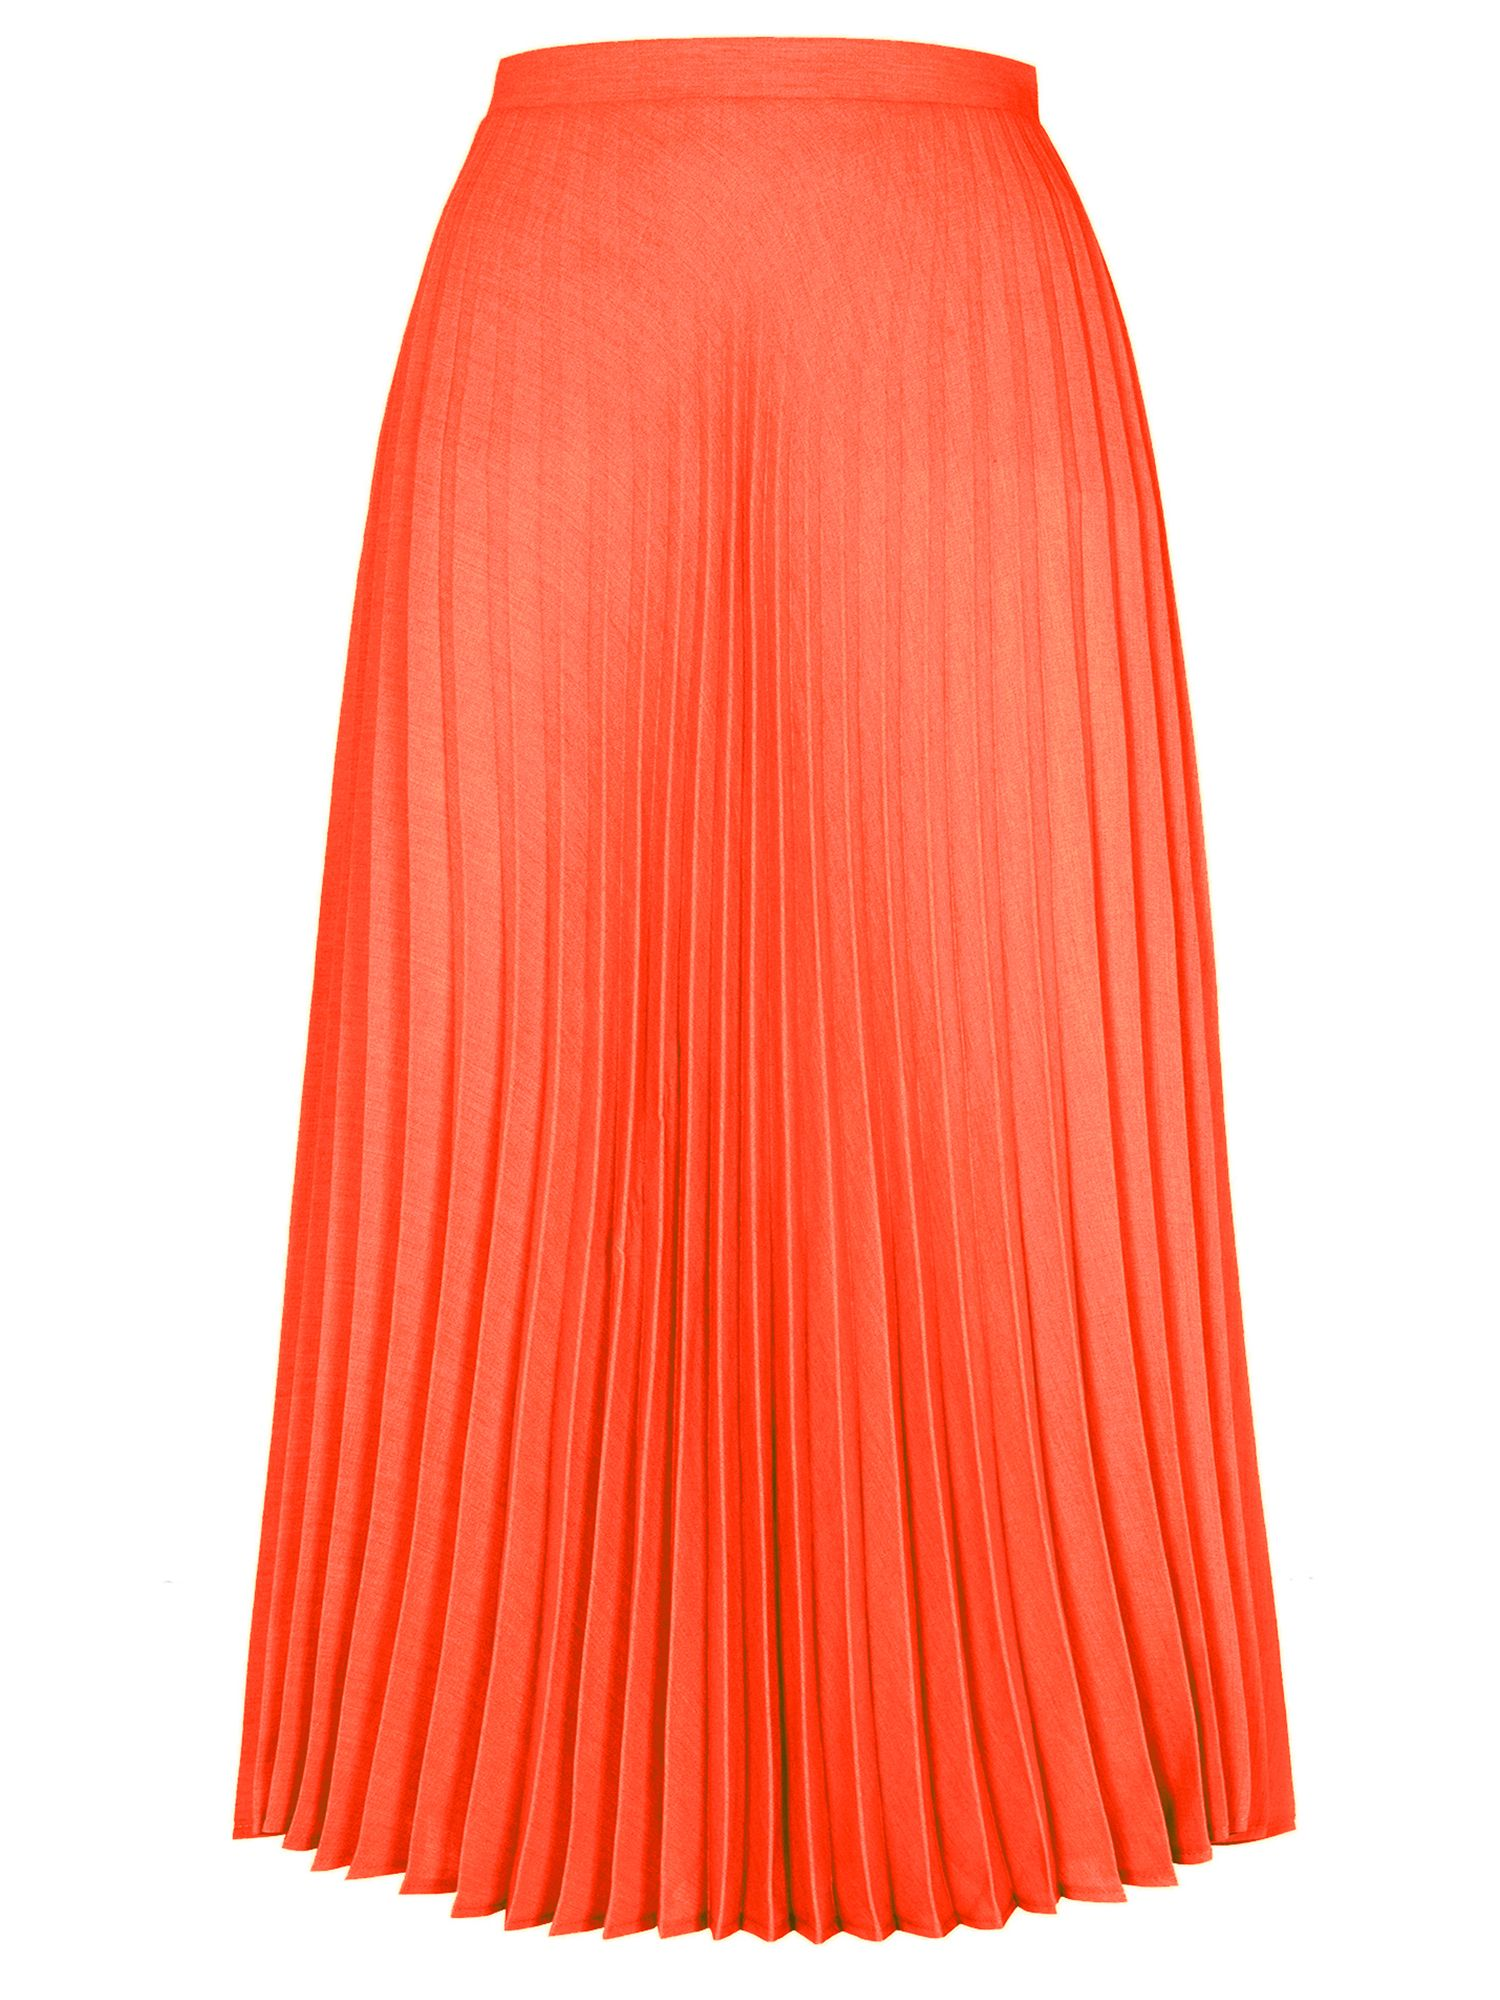 HotSquash Skirt with CleverTech, Orange